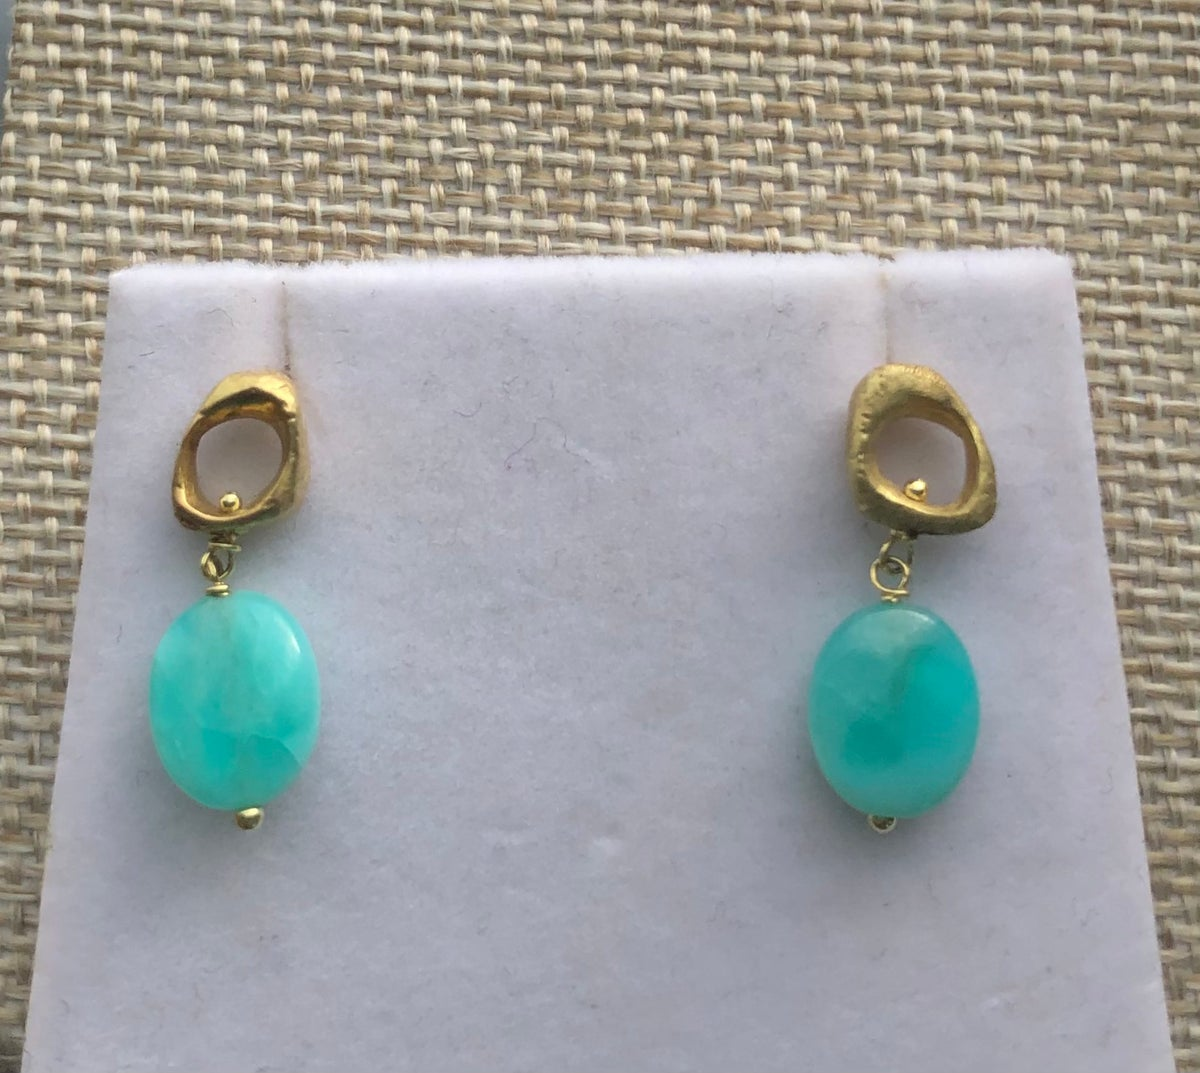 18k gold texture stud earrings with stone